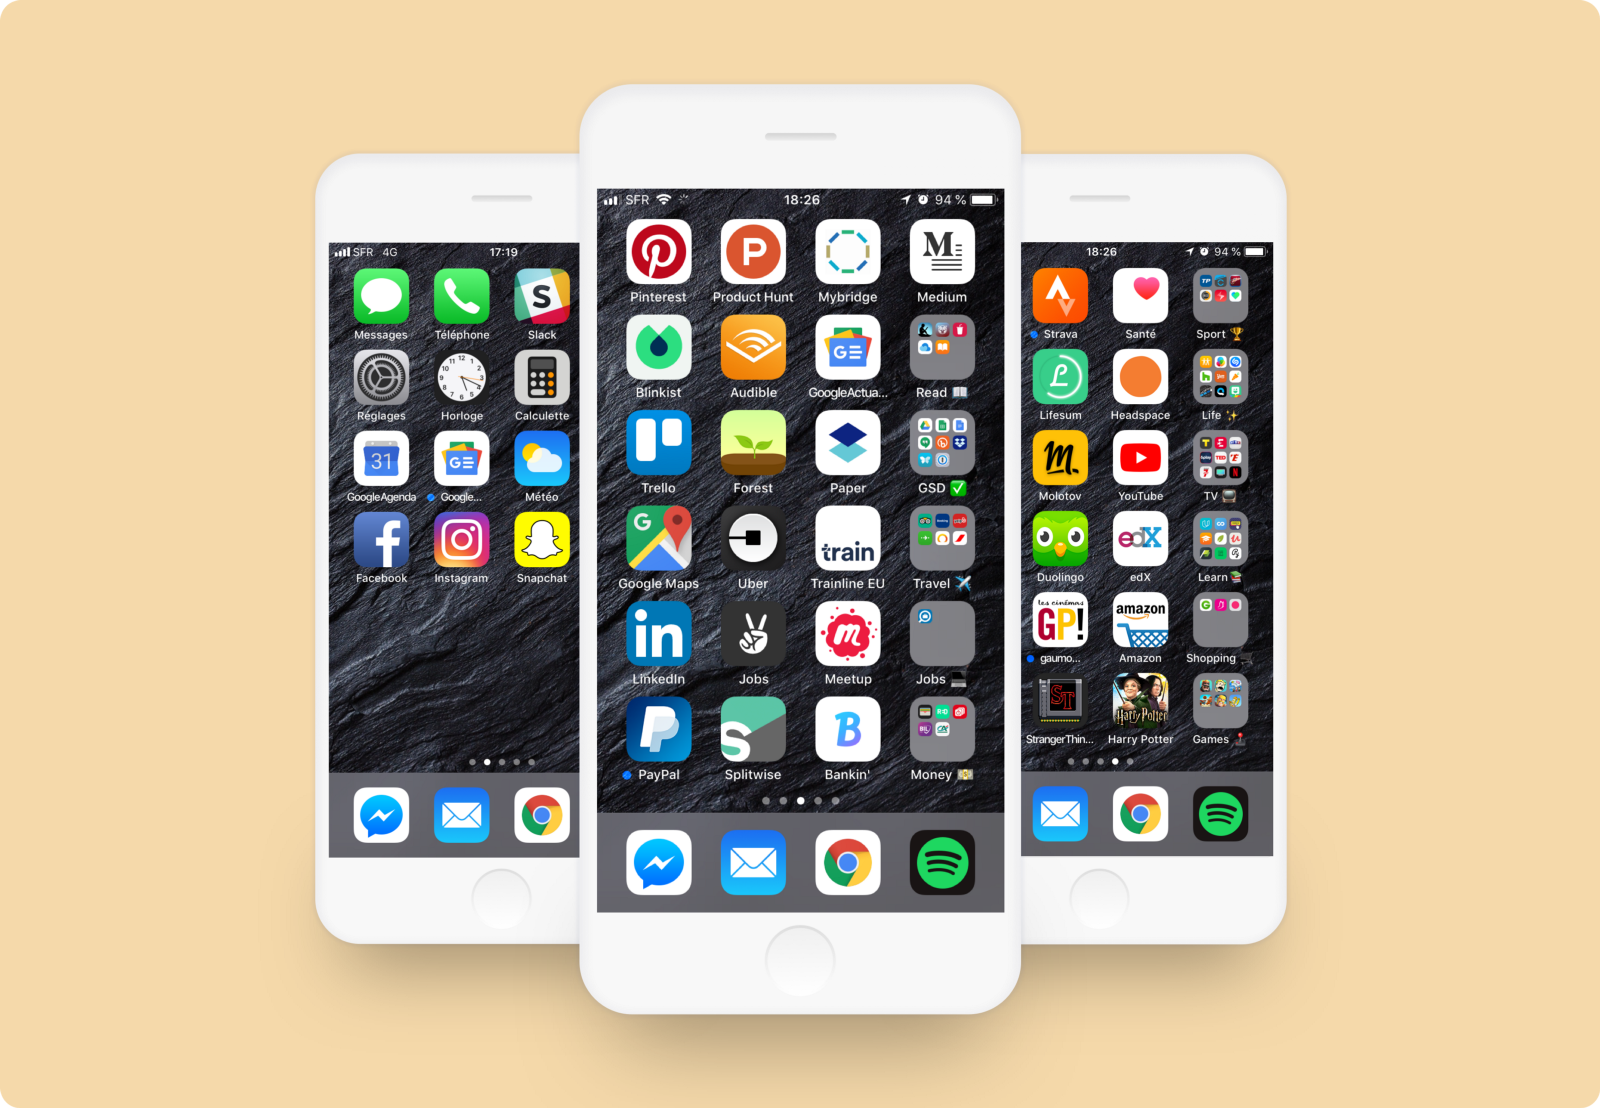 The Best Way To Organize Your Iphone Apps The Startup Medium